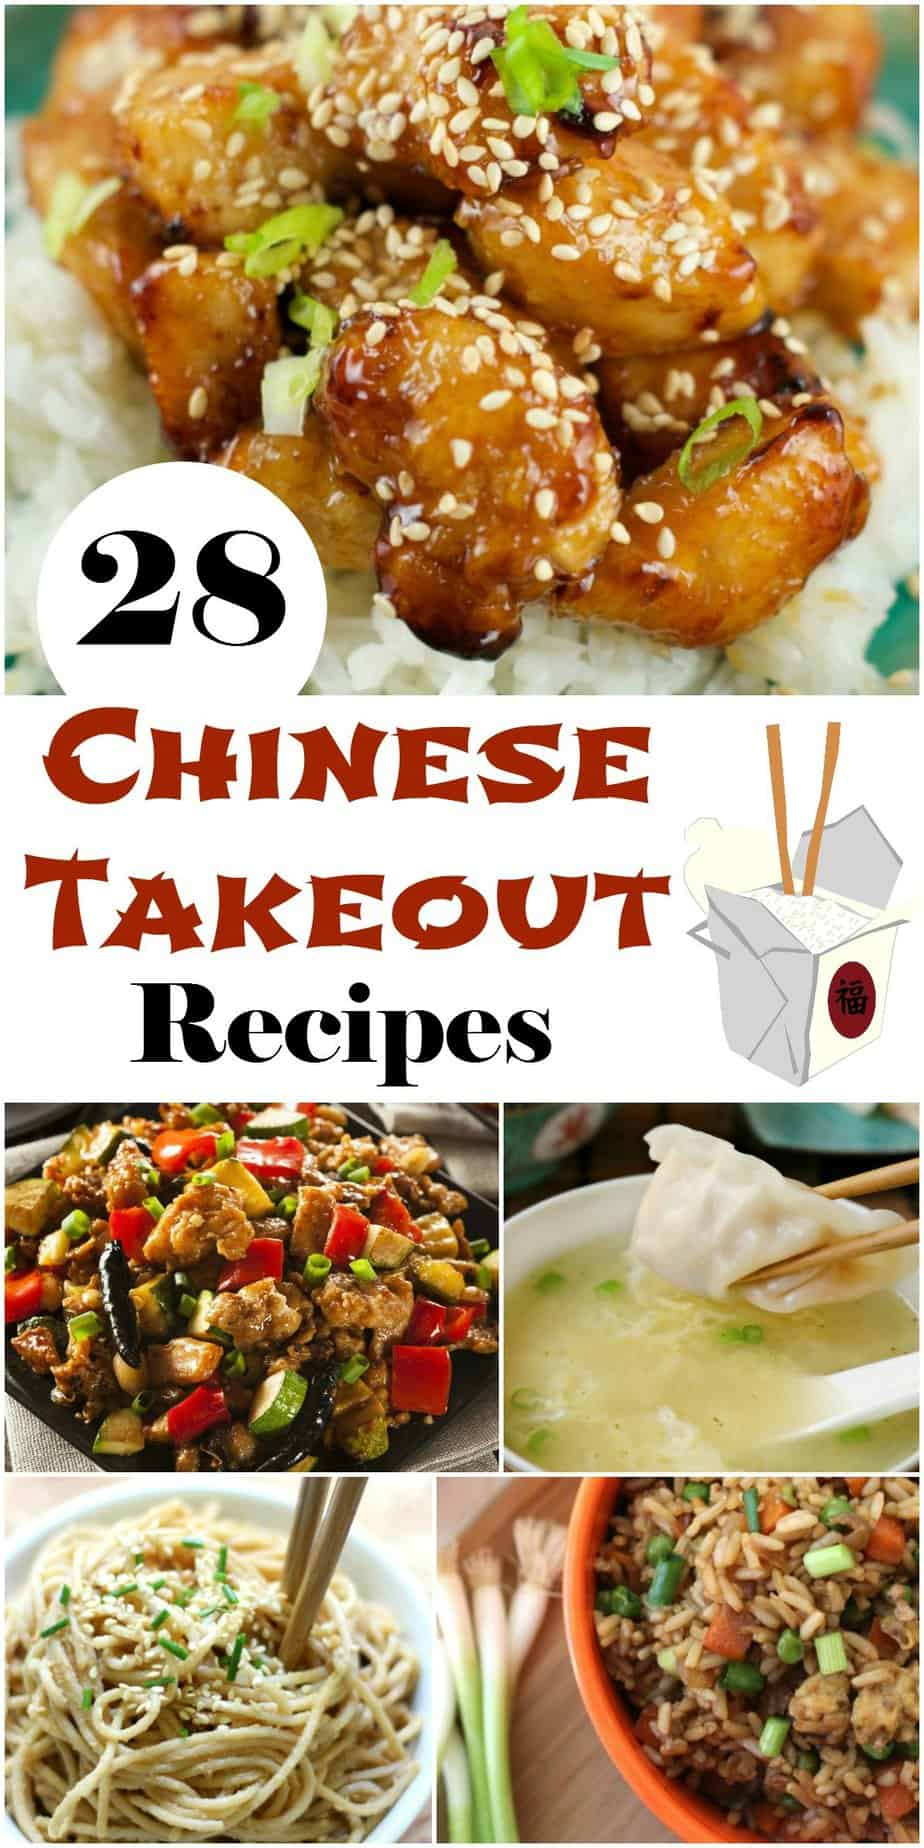 28 chinese takeout recipes you will love an alli event 28 chinese takeout recipes you will love forumfinder Images